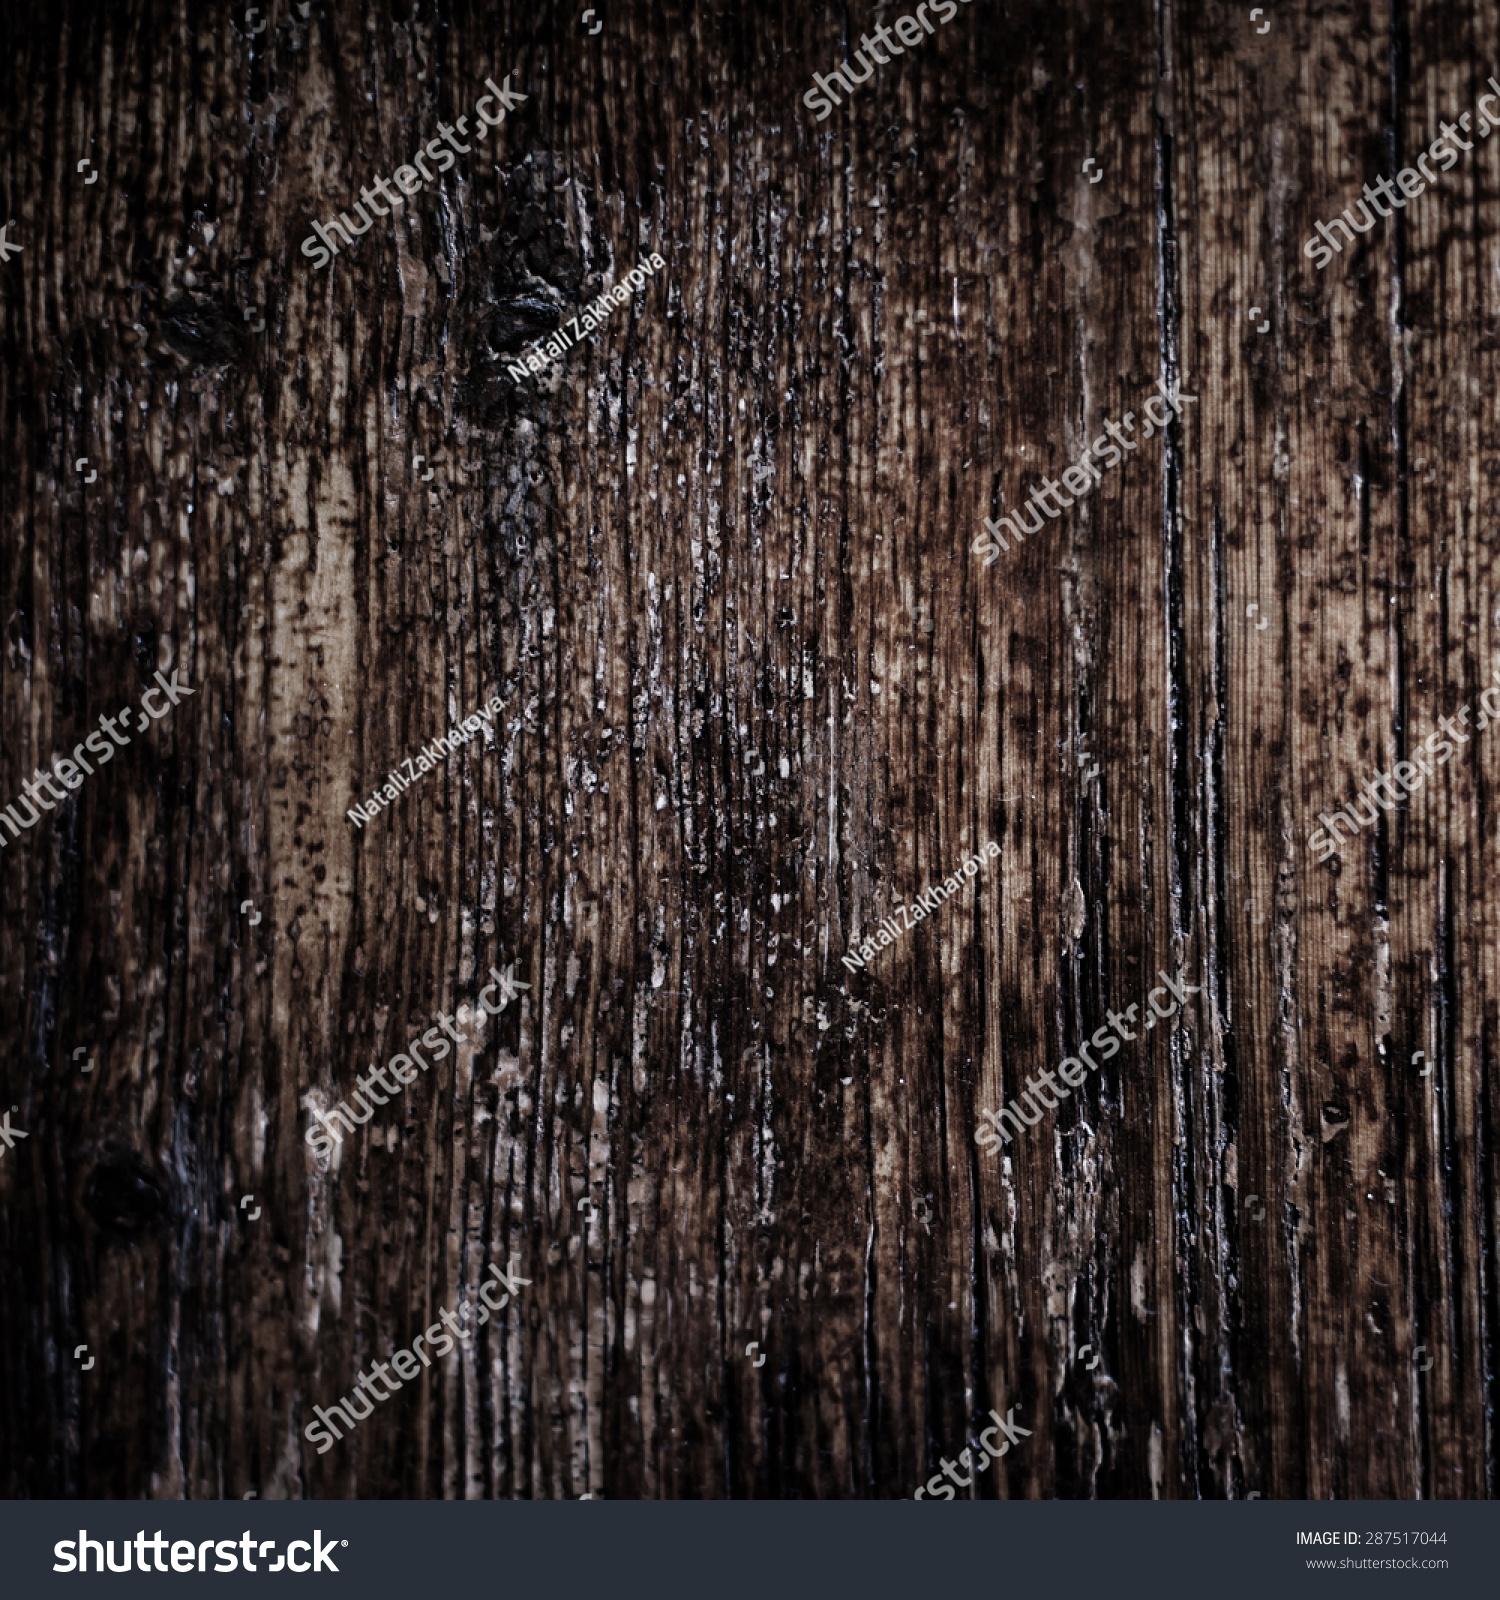 Old vintage white natural wood or wooden texture background or - High Resolution Wooden Floor Texture Old Vintage Planked Wood Board Used As Background